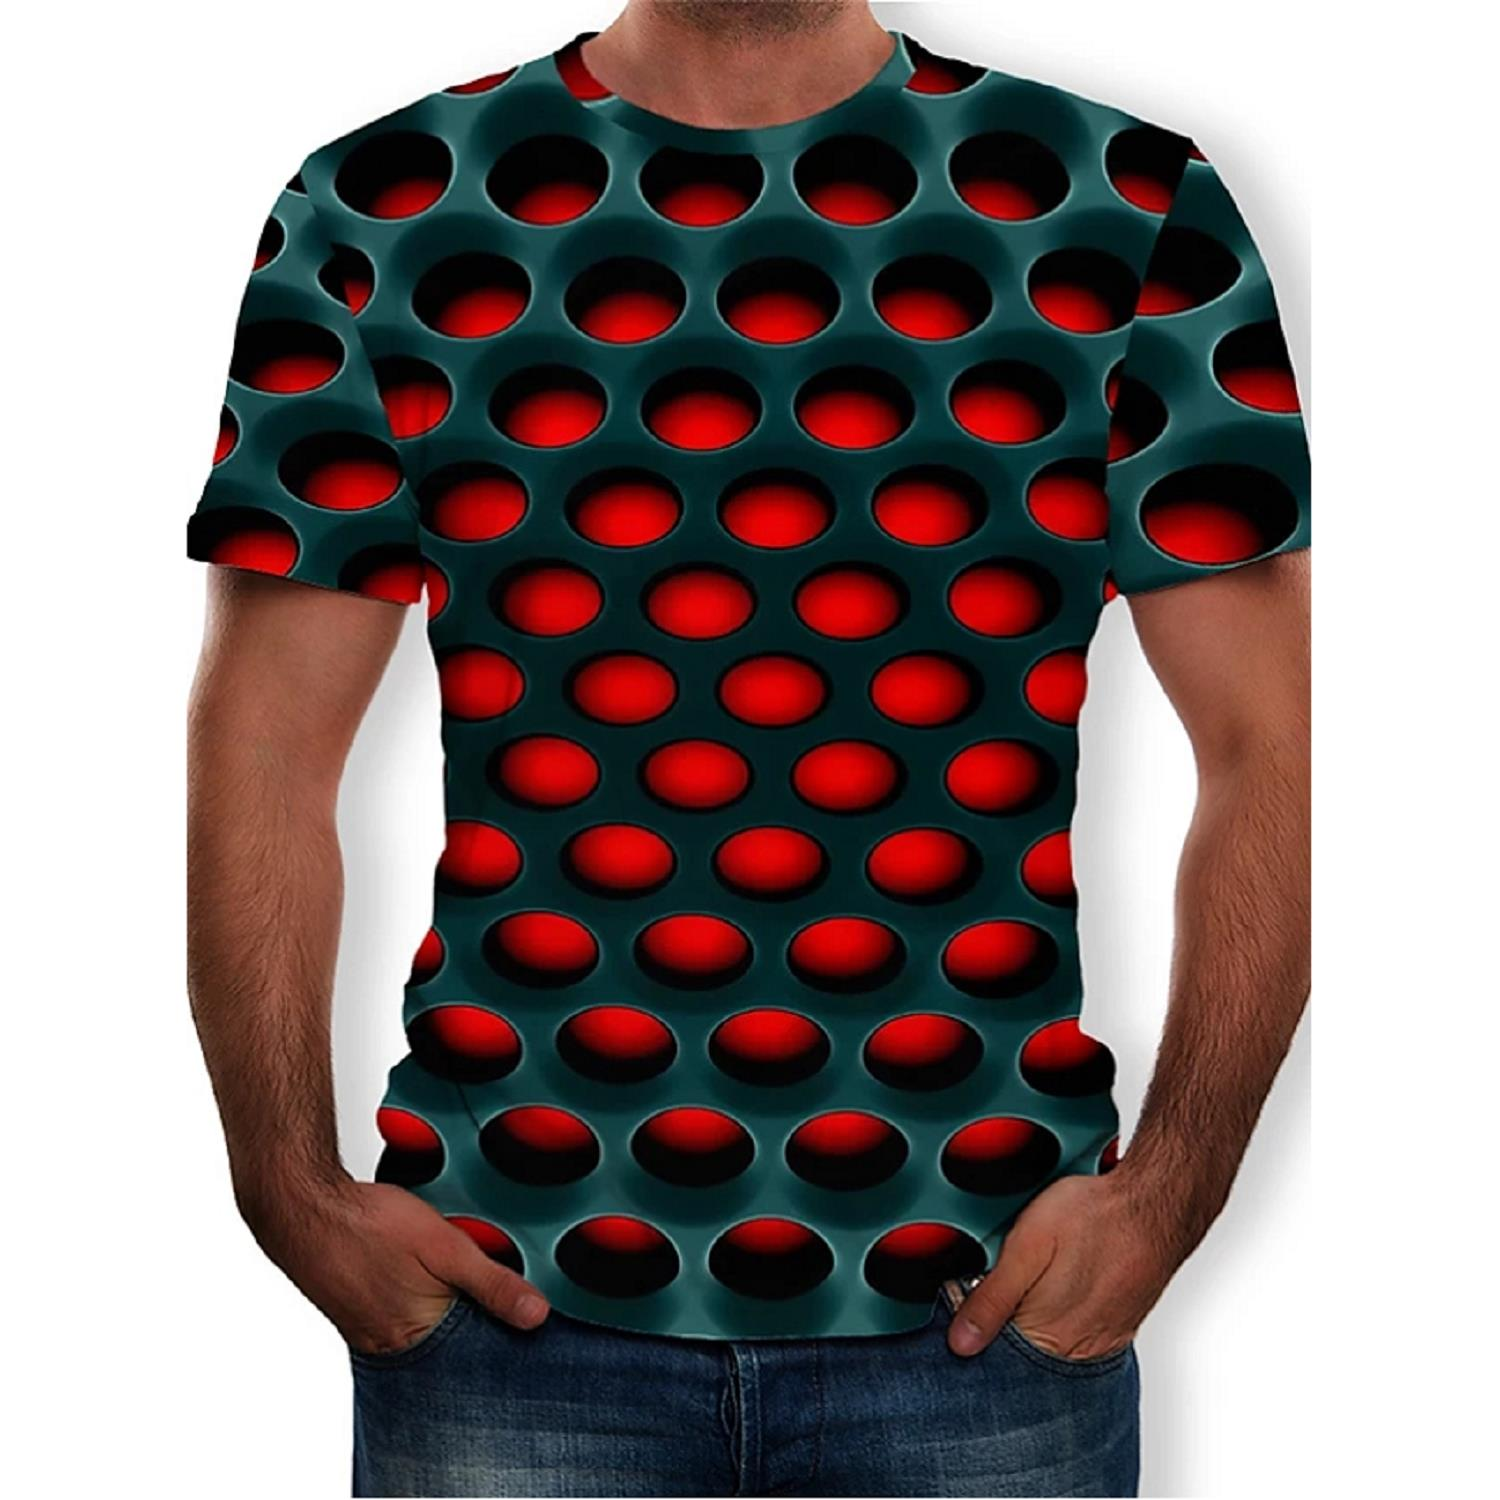 Male Tshirt Tees Tops Short-Sleeve Different Styles Summer Hot-Sale 3D 3d-Printed XS-5XL